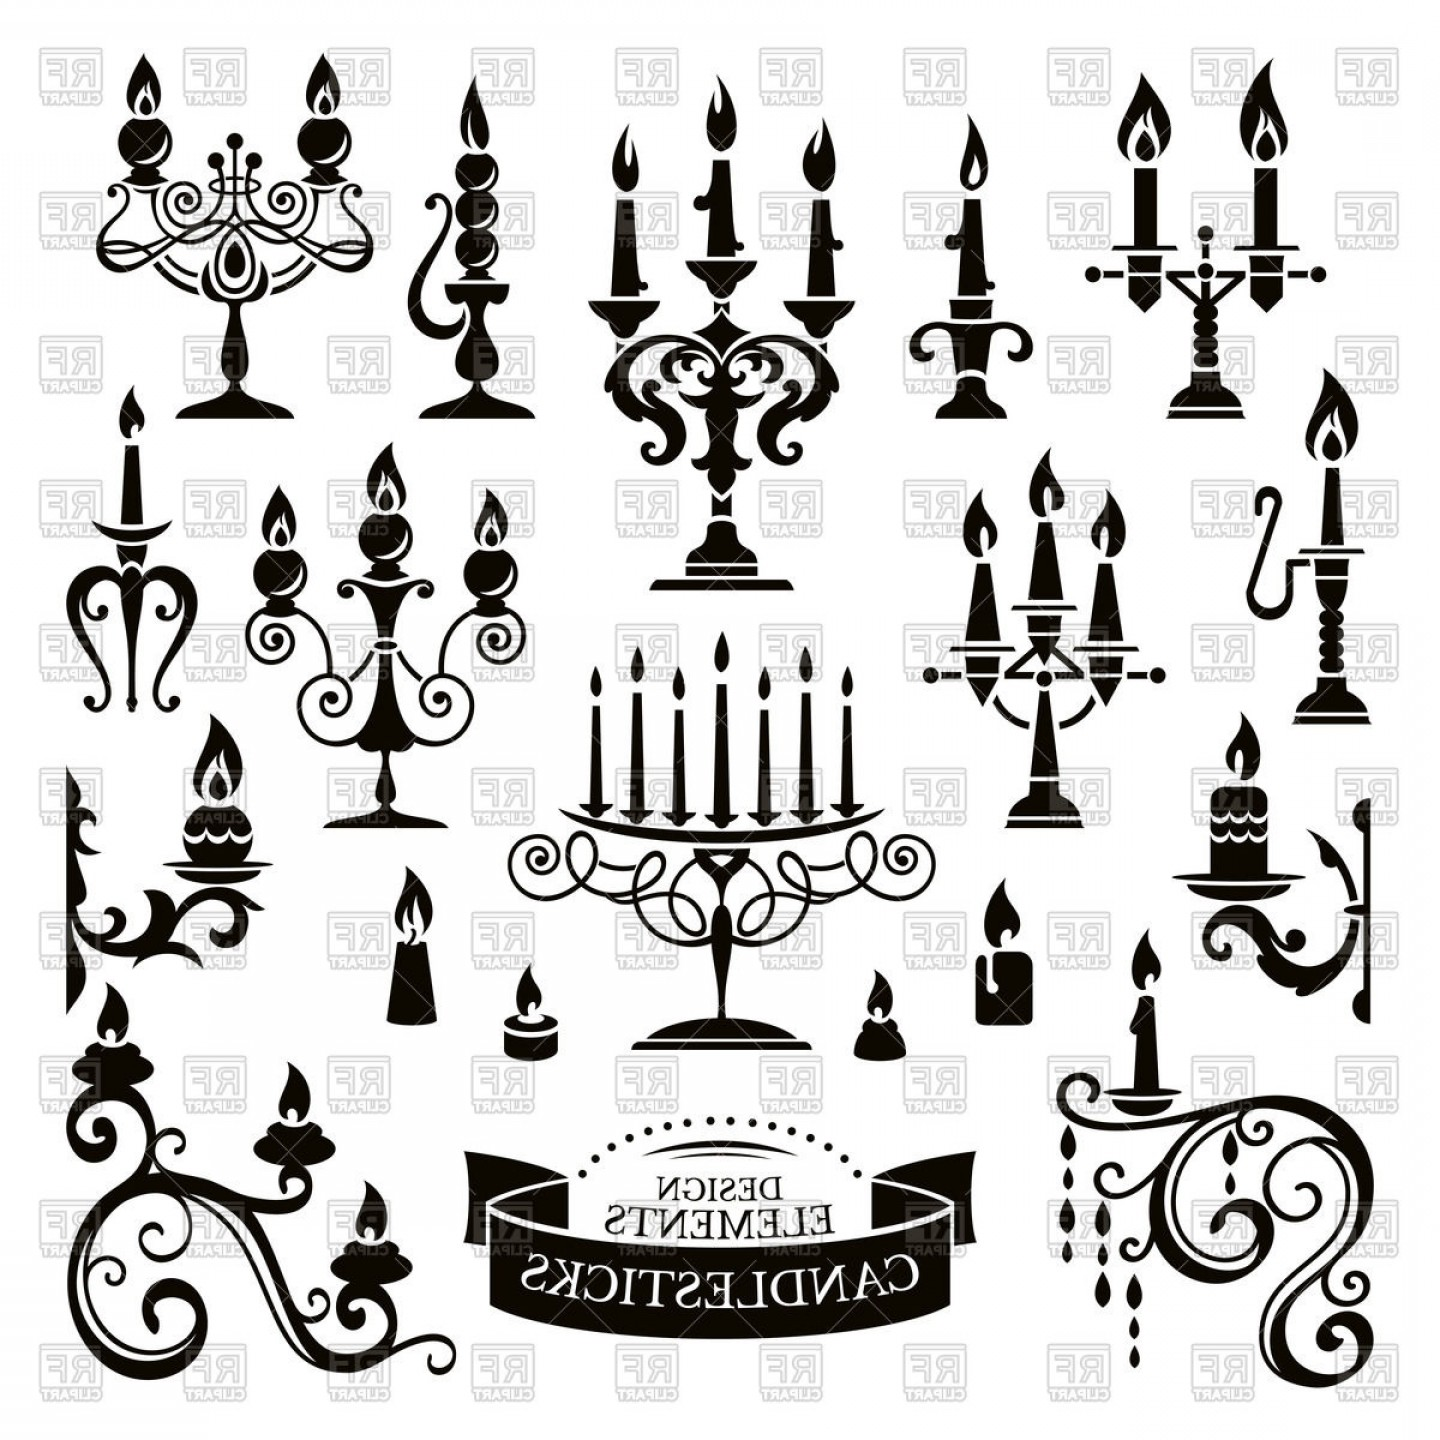 Candle Vector Black: Silhouettes Of Candlesticks And Candles Vector Clipart